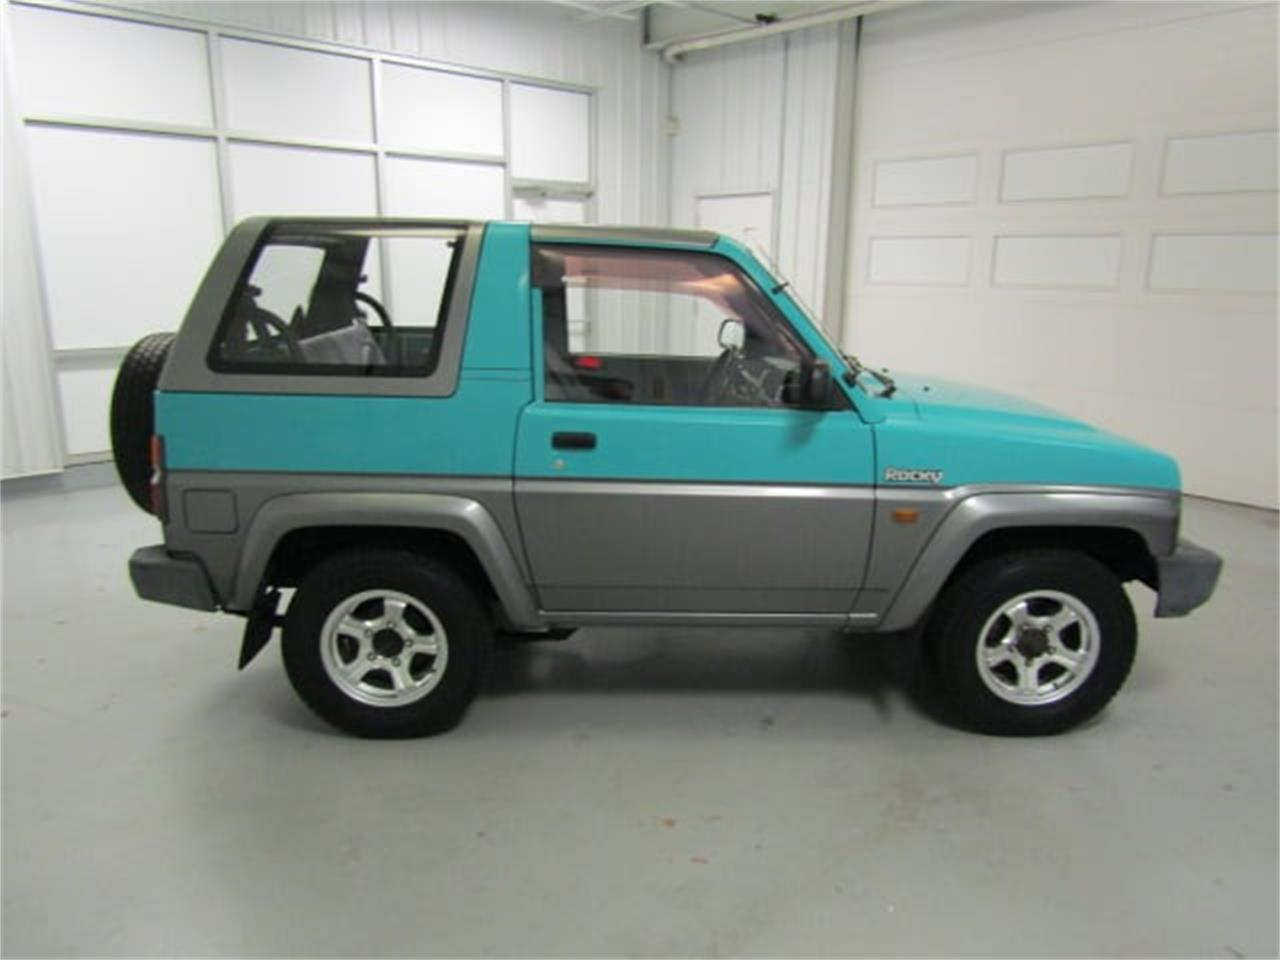 Large Picture of 1991 Rocky - $8,989.00 Offered by Duncan Imports & Classic Cars - Q4MR